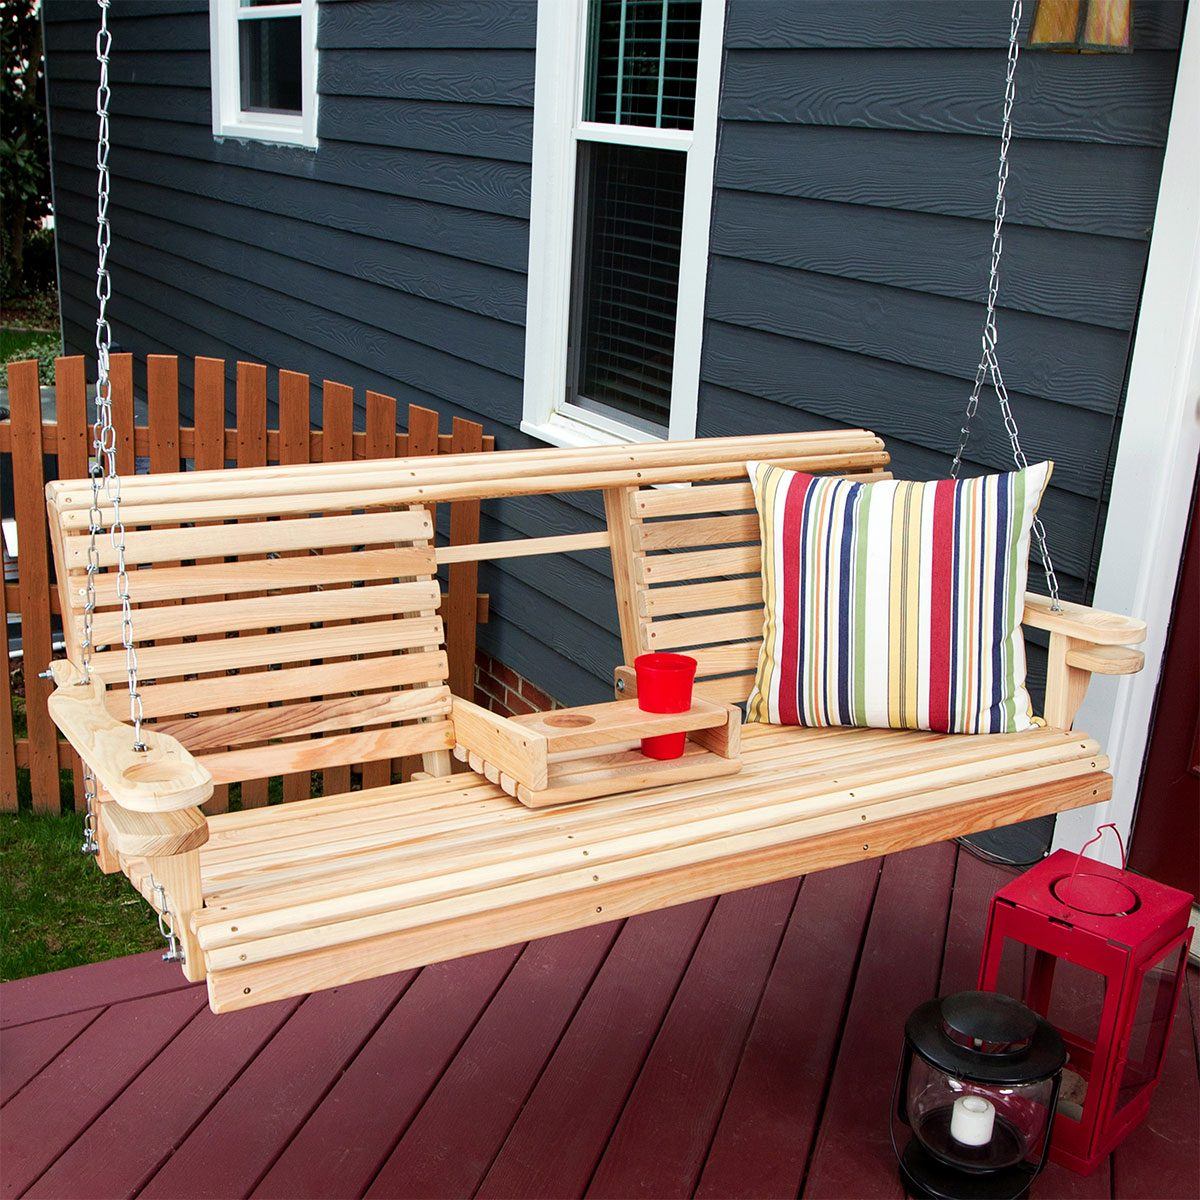 you can handyman swings this summer we family swing stuff pretty all the clever enjoy porch console love view